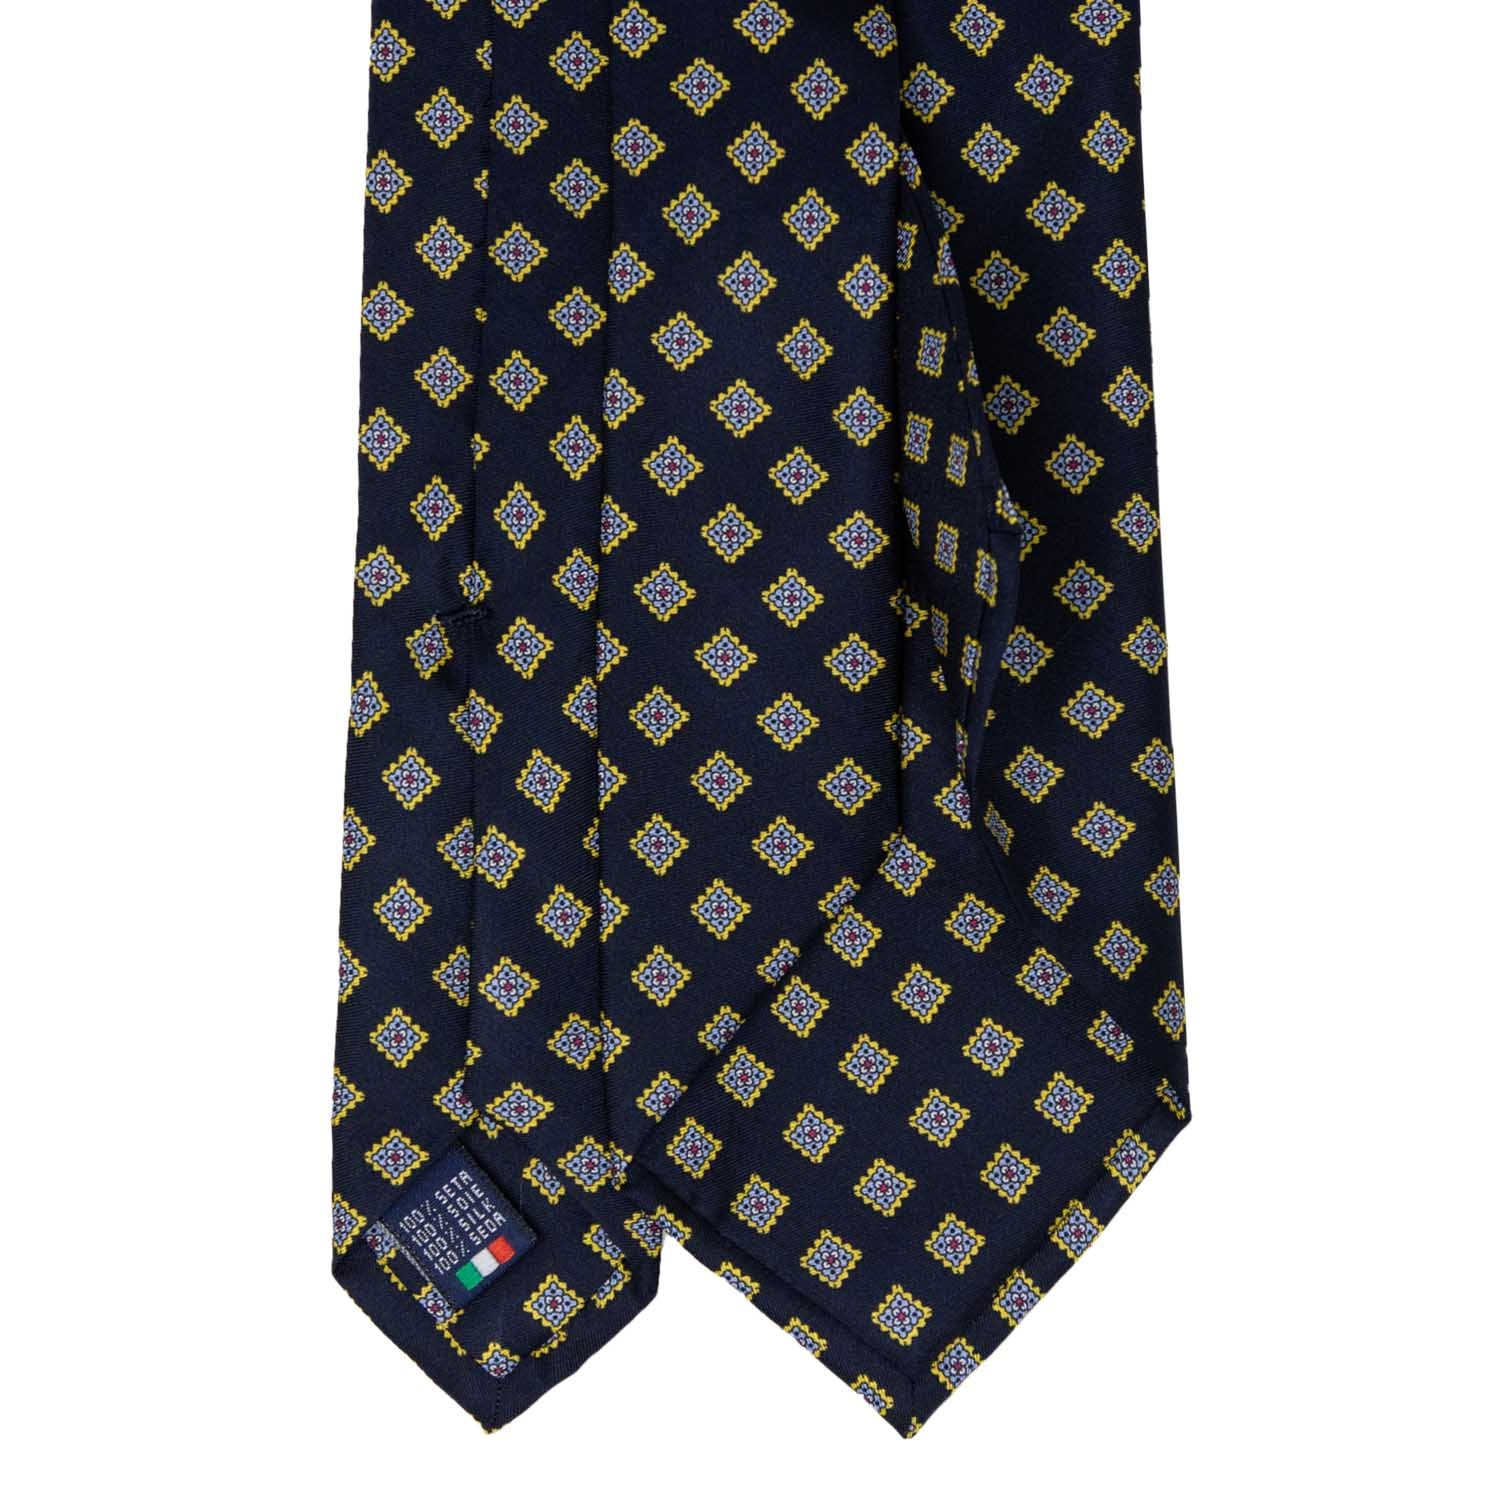 Navy blue with Yellow Squares Pattern Silk Tie - serafinesilk